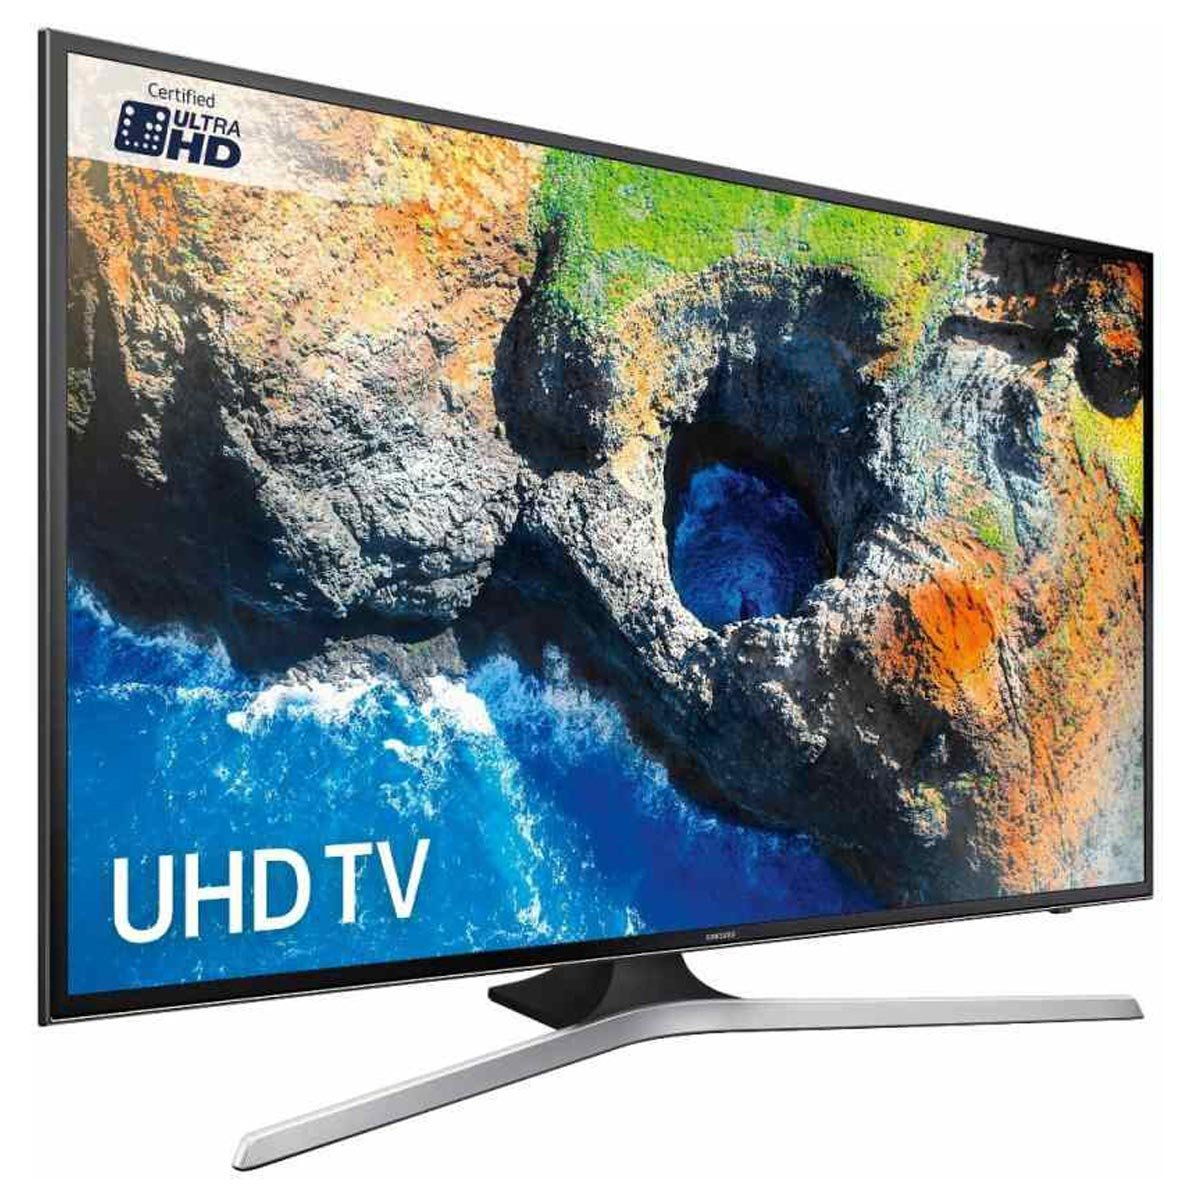 25f11df6591ad Samsung UA50MU6100 50 Inch 127cm Smart 4K Ultra HD LED LCD TV ...